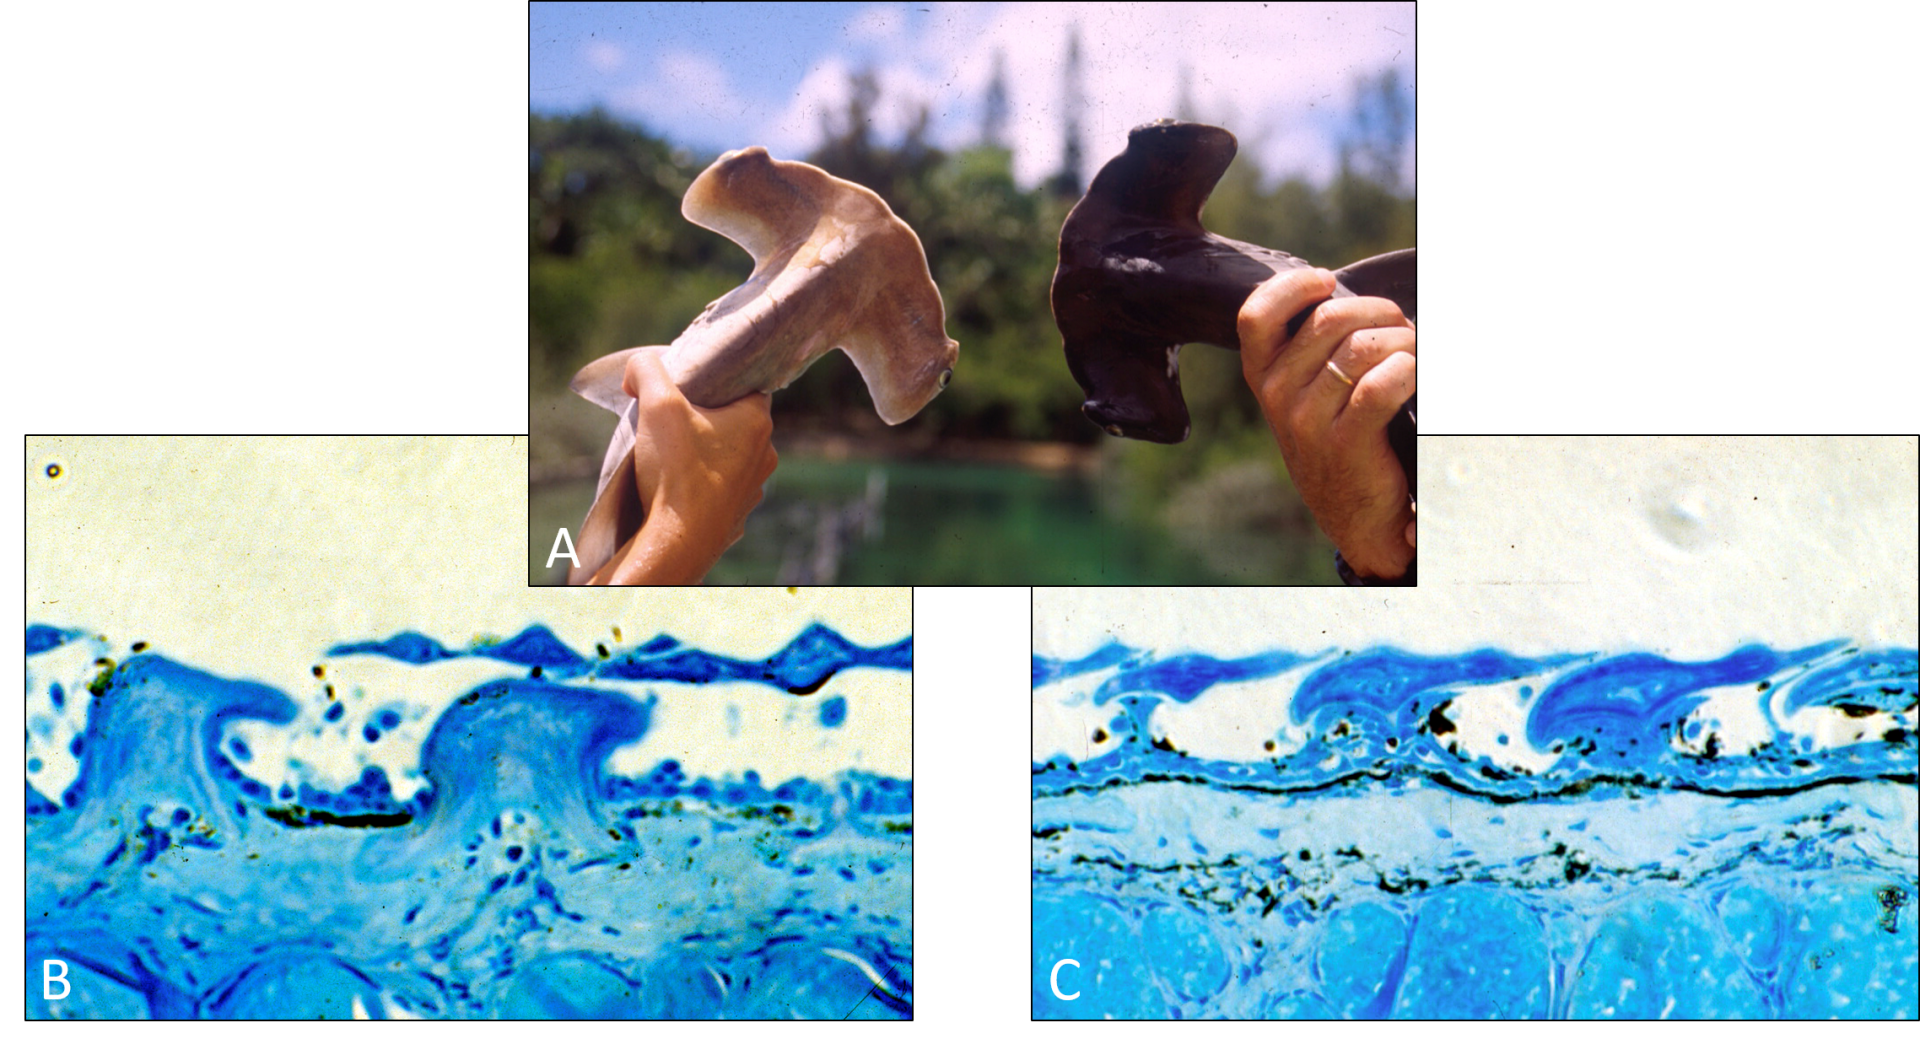 Fig. 3. A) two scalloped hammerhead sharks are held up side by side, B) histology of untanned scalloped hammerhead shark skin, C) histology of tanned scalloped hammerhead shark skin